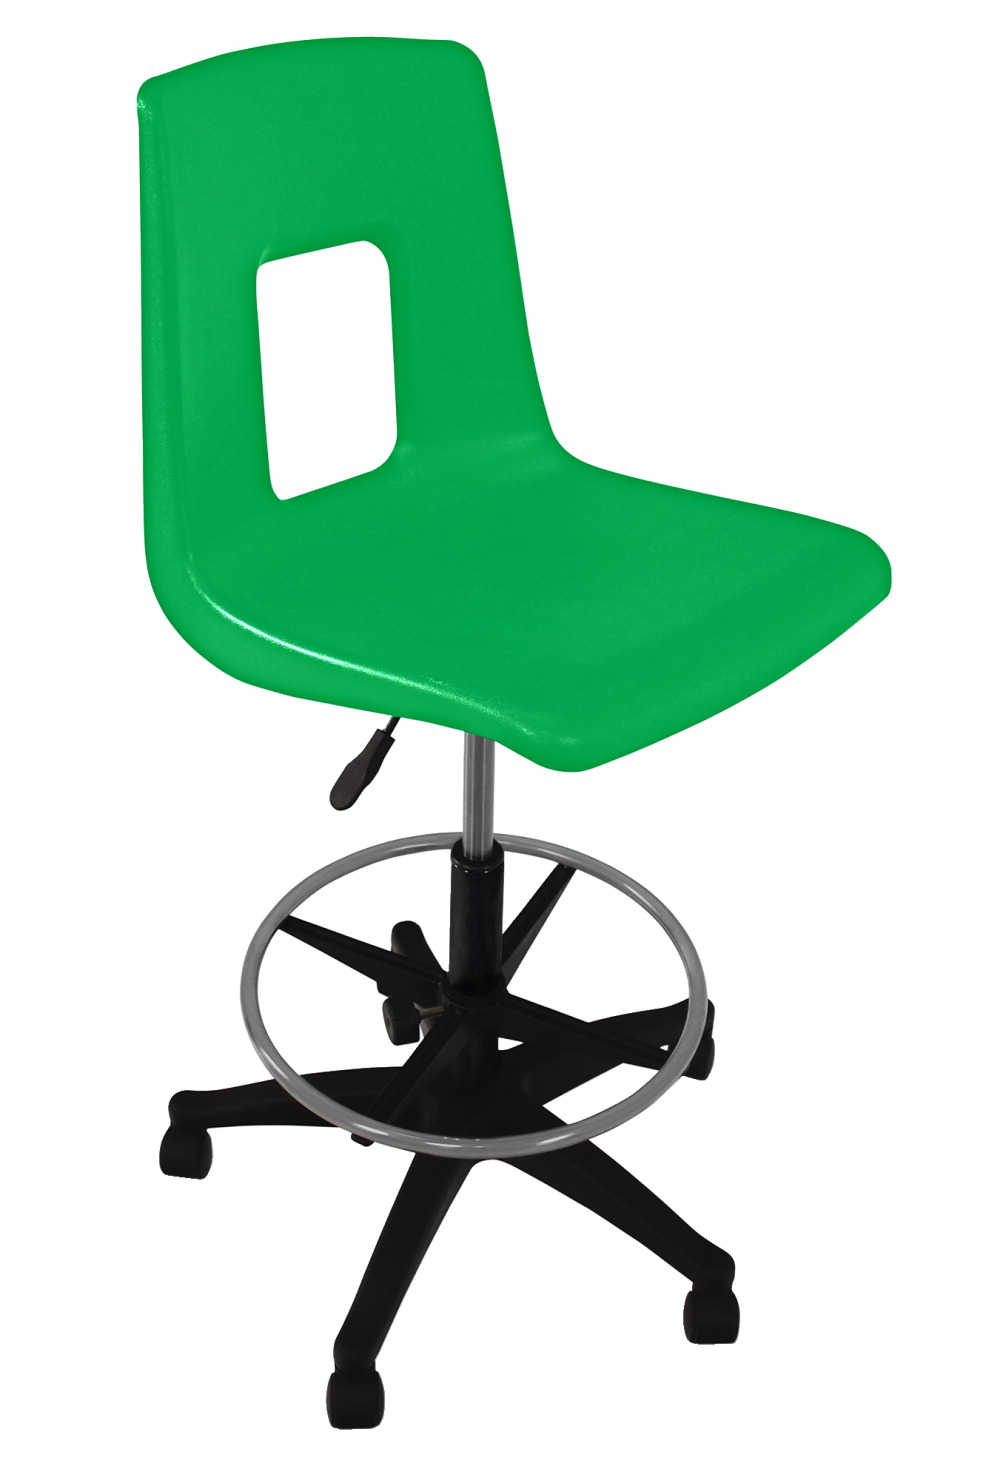 Classroom Select Traditional Pneumatic Lift Chair with Adjustable Foot Ring, A+ Shell, Various Options